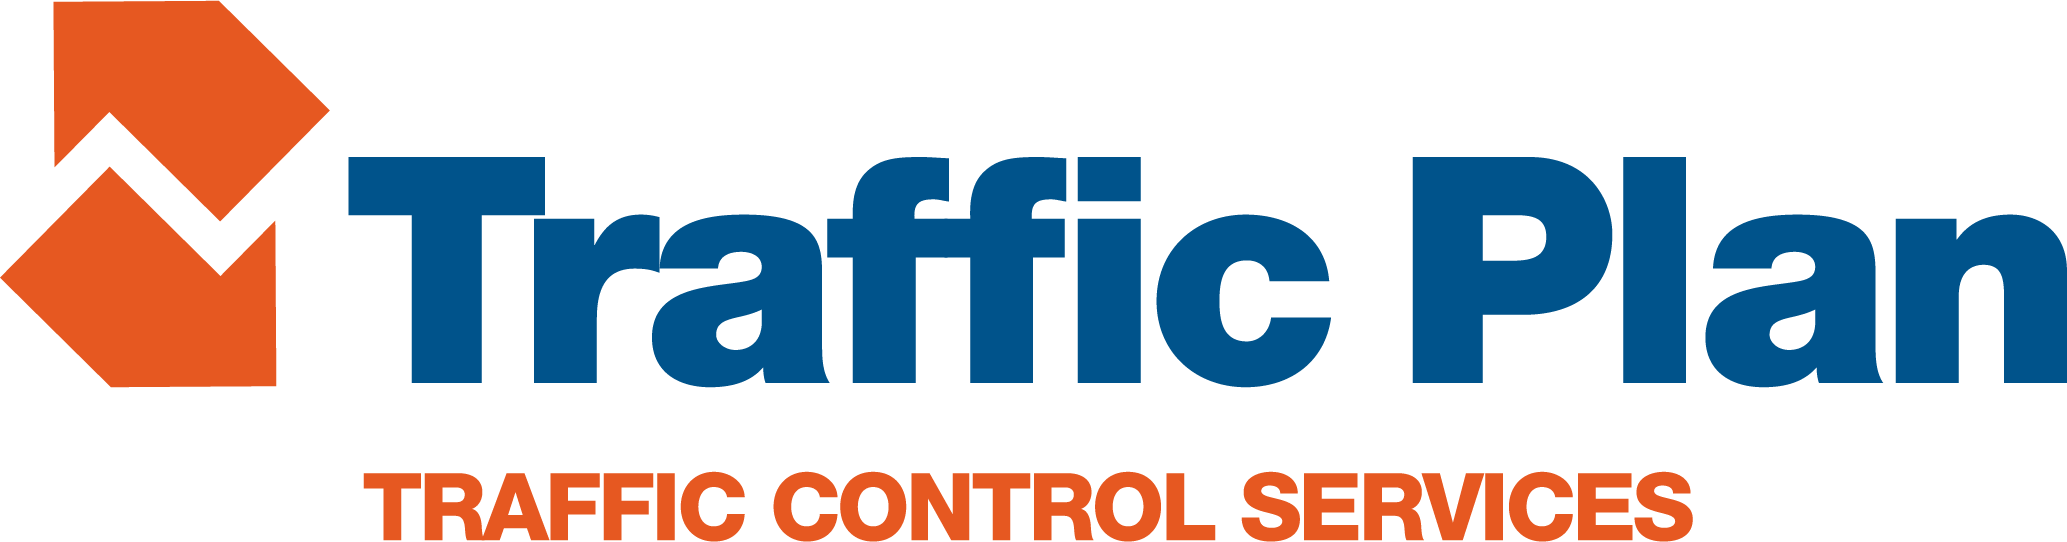 Traffic Control Company | Professional Traffic Safety Services